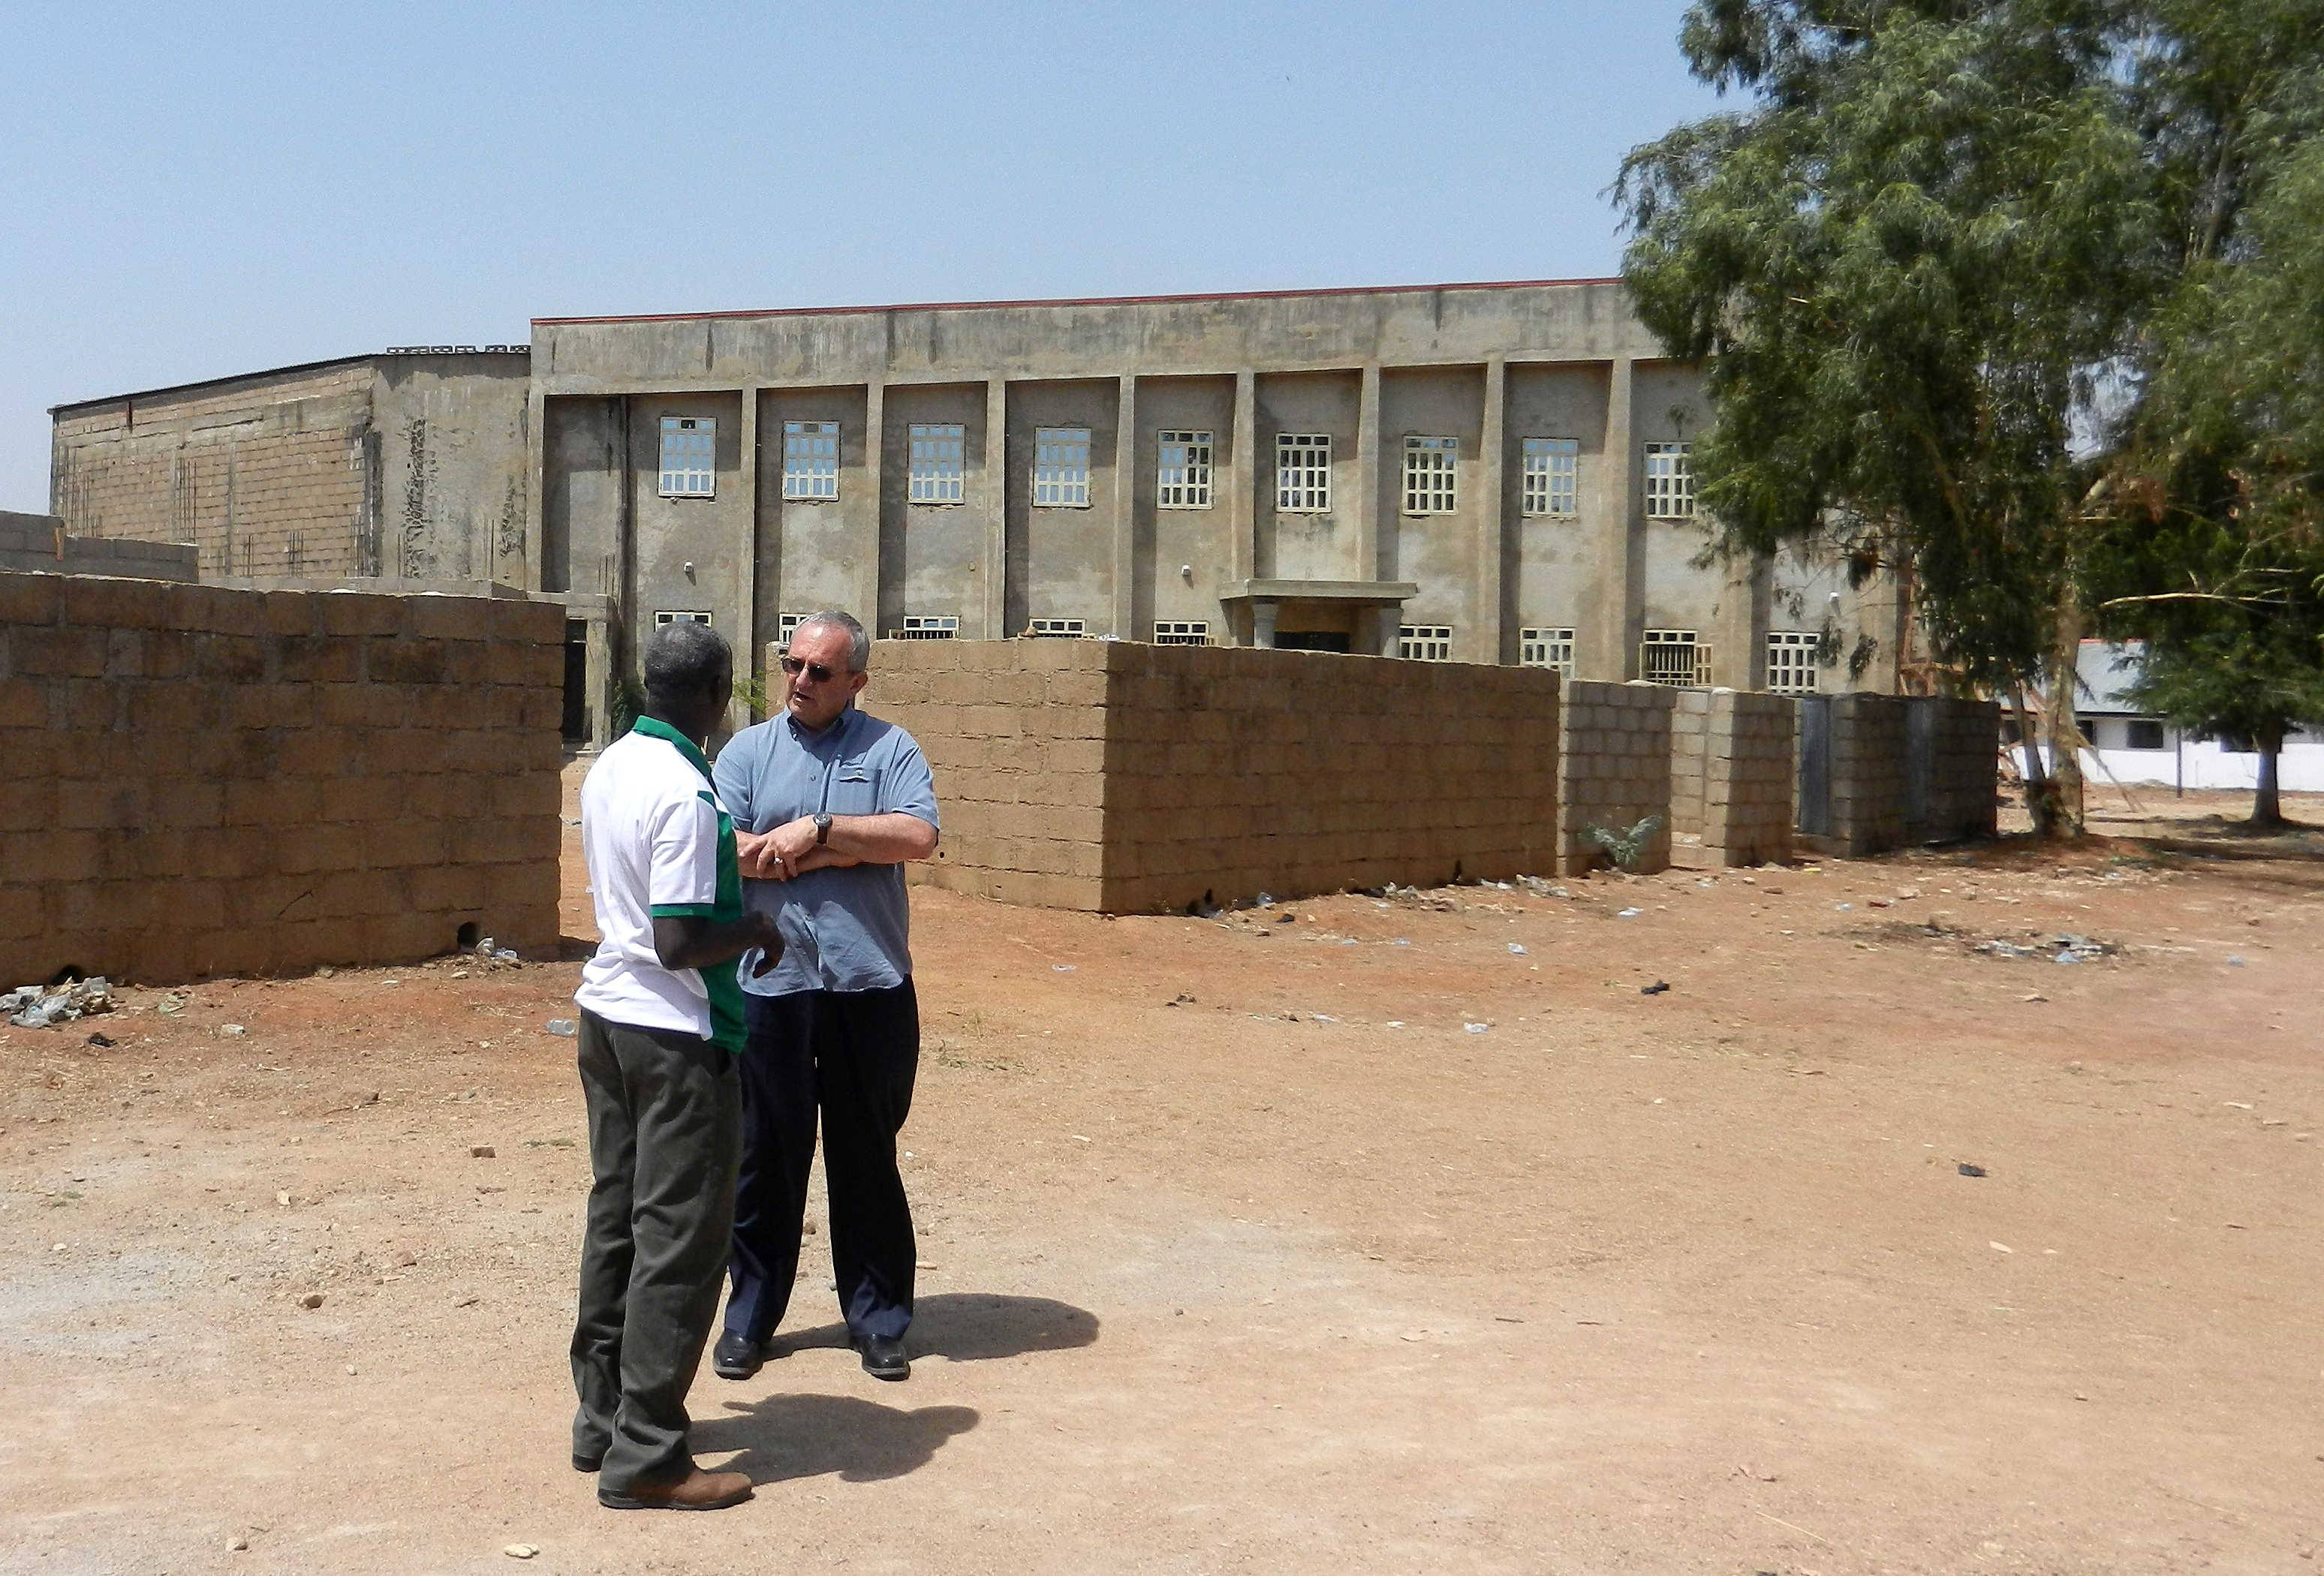 Stanley Noffsinger, right, general secretary for the Church of the Brethren, whose headquarters are in Elgin, went on a trip to Nigeria last month. Here he is pictured the week of April 7 with Ekklesiyar Yan'uwa a Nigeria's president, Samuel Dali, in front of a new building being built in Kwarhi, Nigeria, by EYN, which is a sister church to Church of the Brethren.